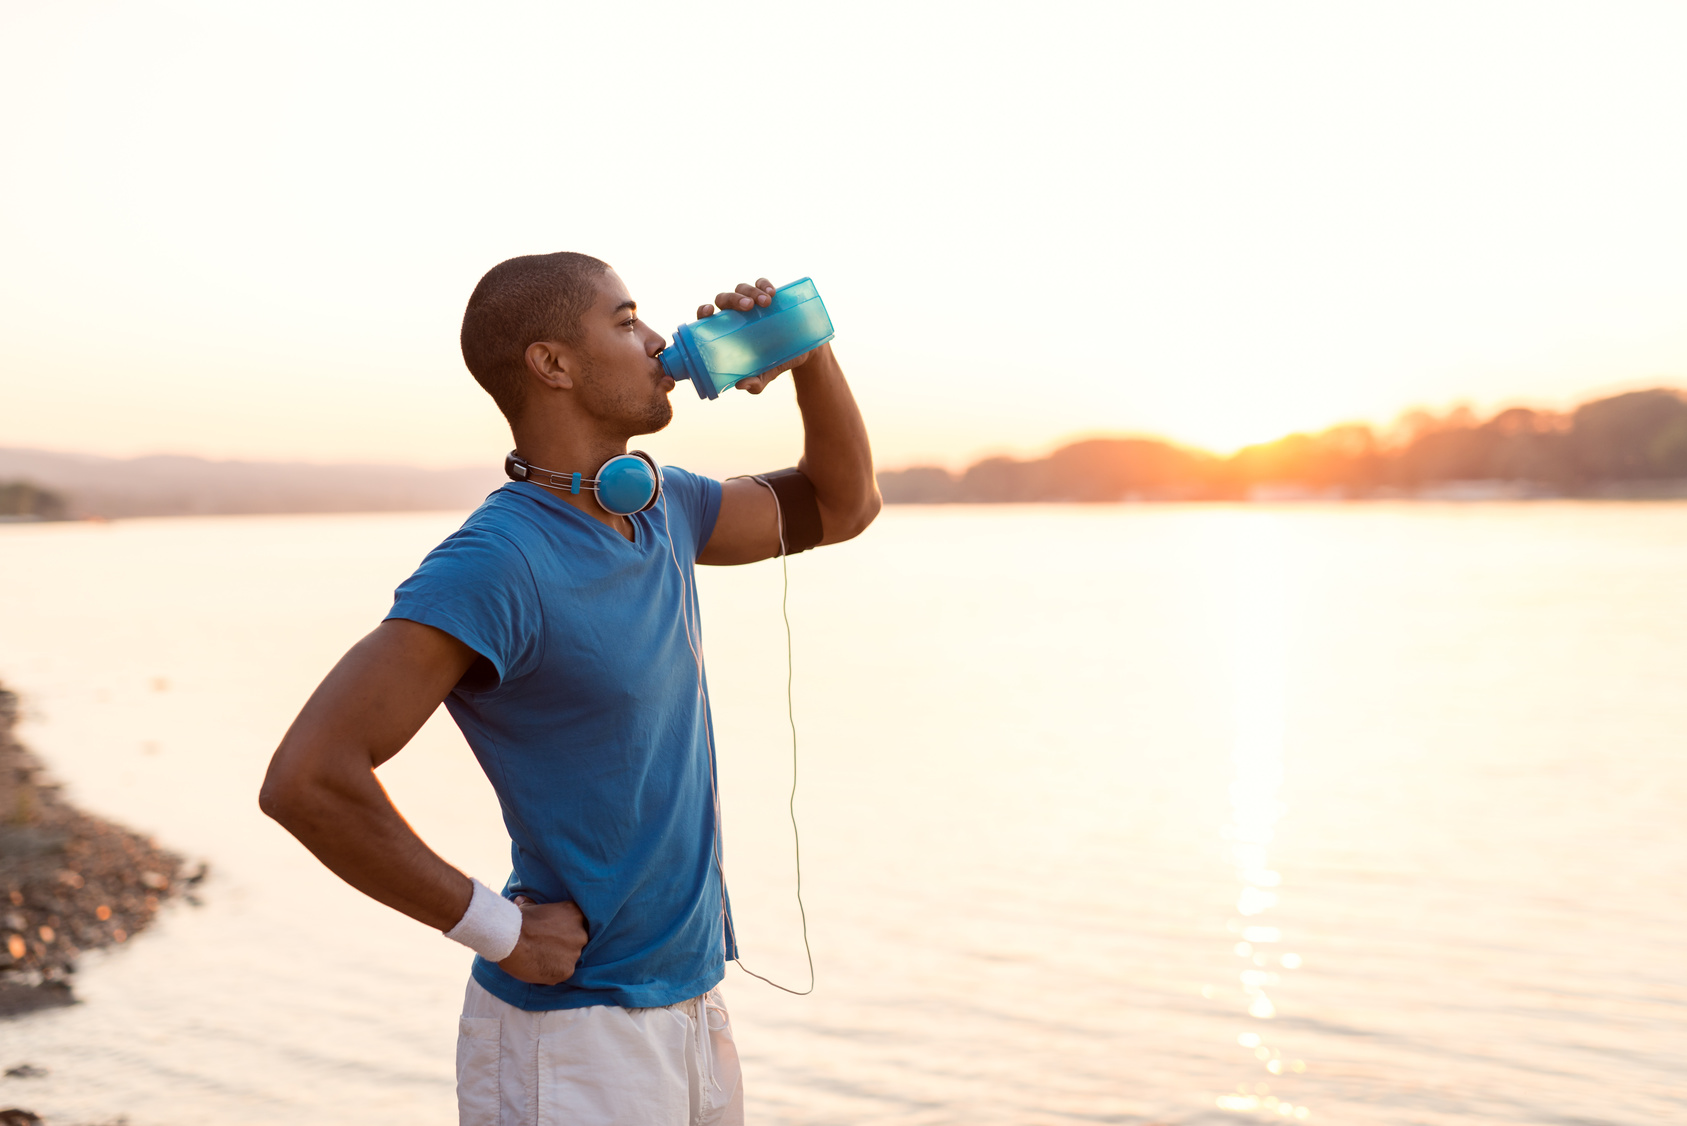 My Water Ionizer Story: Alkaline Water and My Workouts